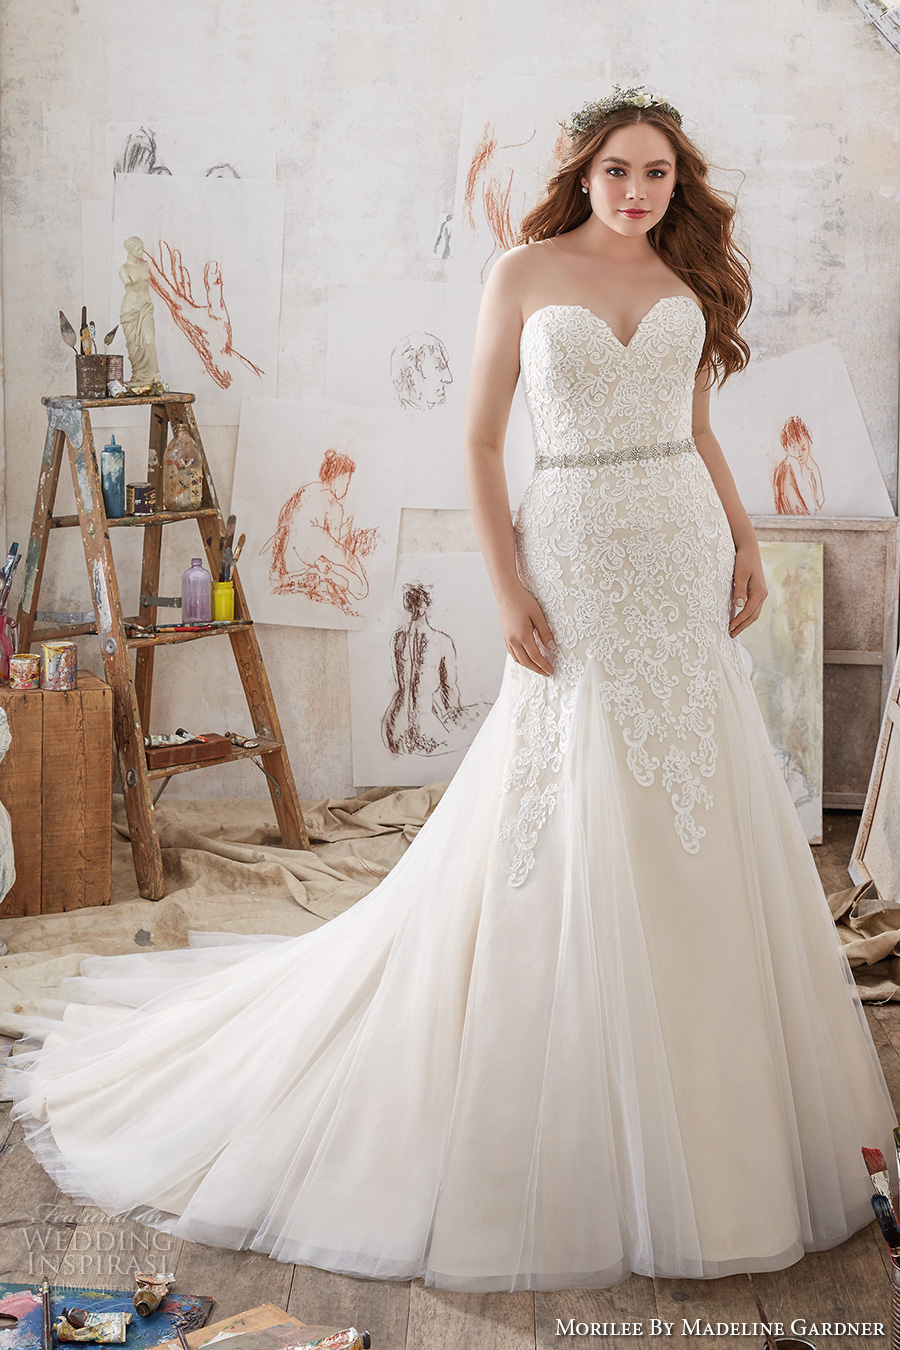 Morilee By Madeline Gardner Spring 2017 Wedding Dresses - Plus Size Blush Wedding Dresses